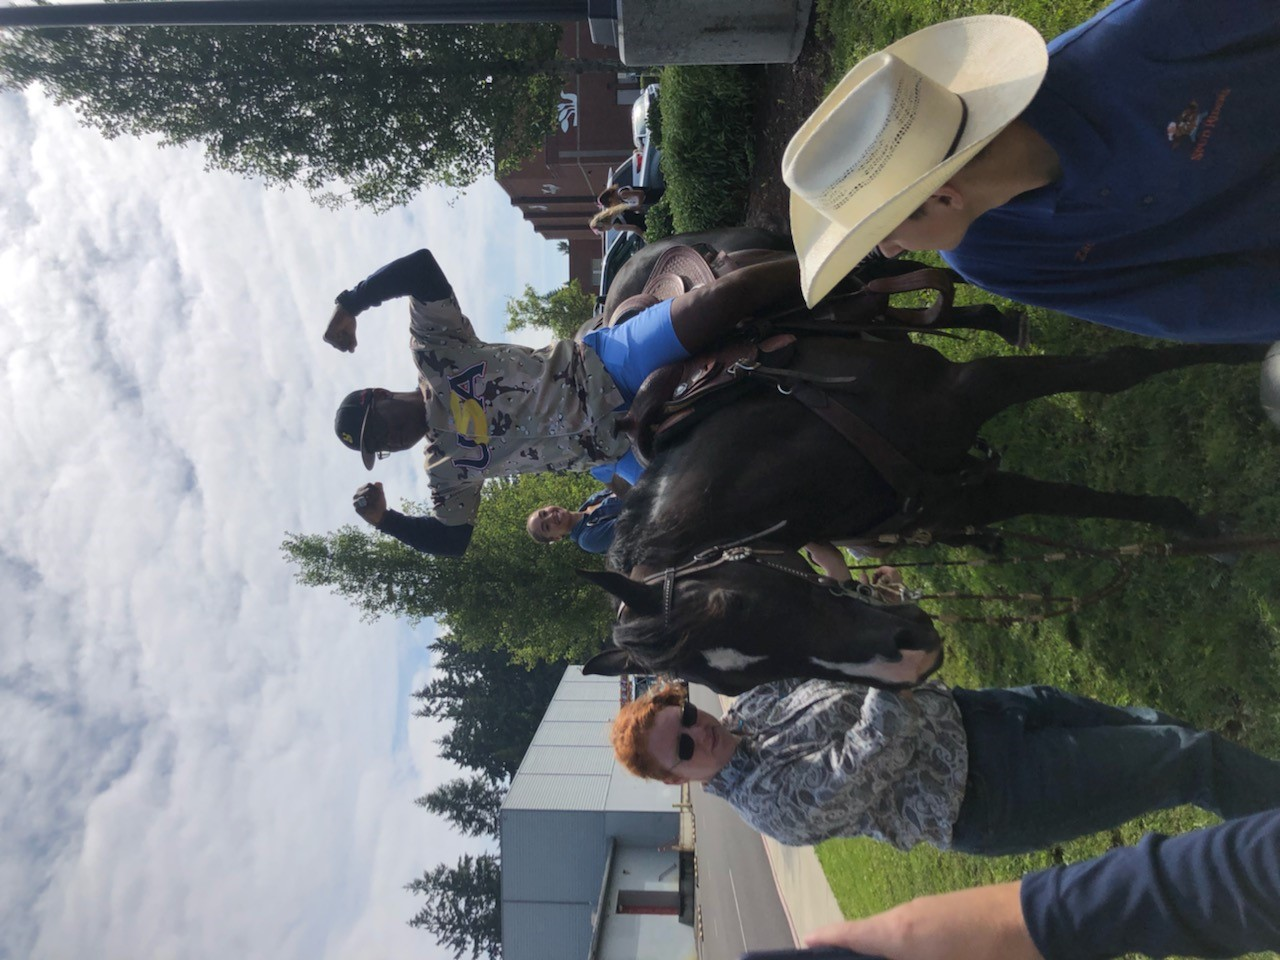 Coach Tom Eaton feeling great on horseback